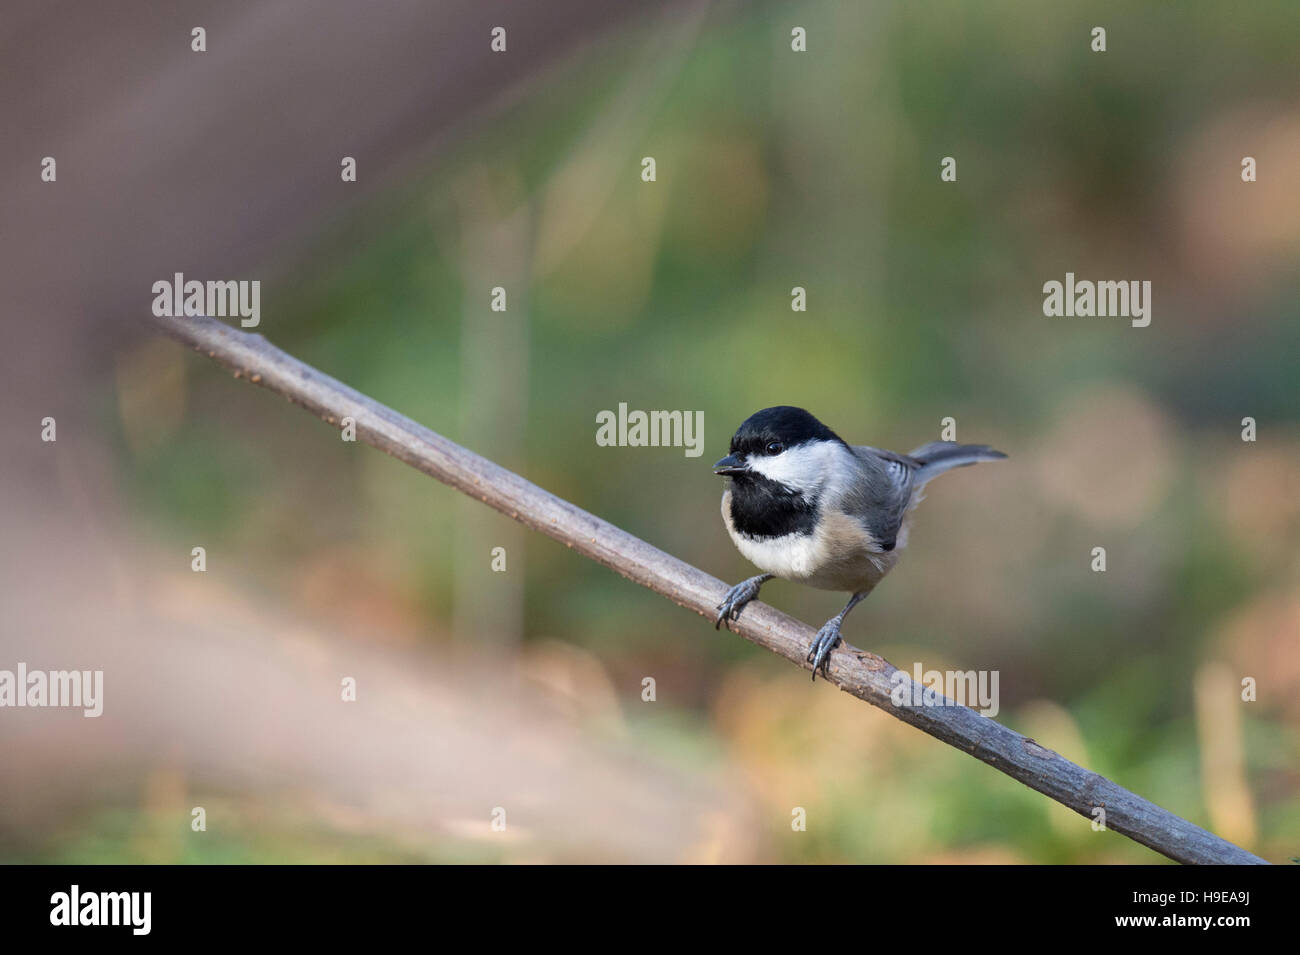 A cute black and white Carolina Chickadee is perched on a tiny branch. - Stock Image